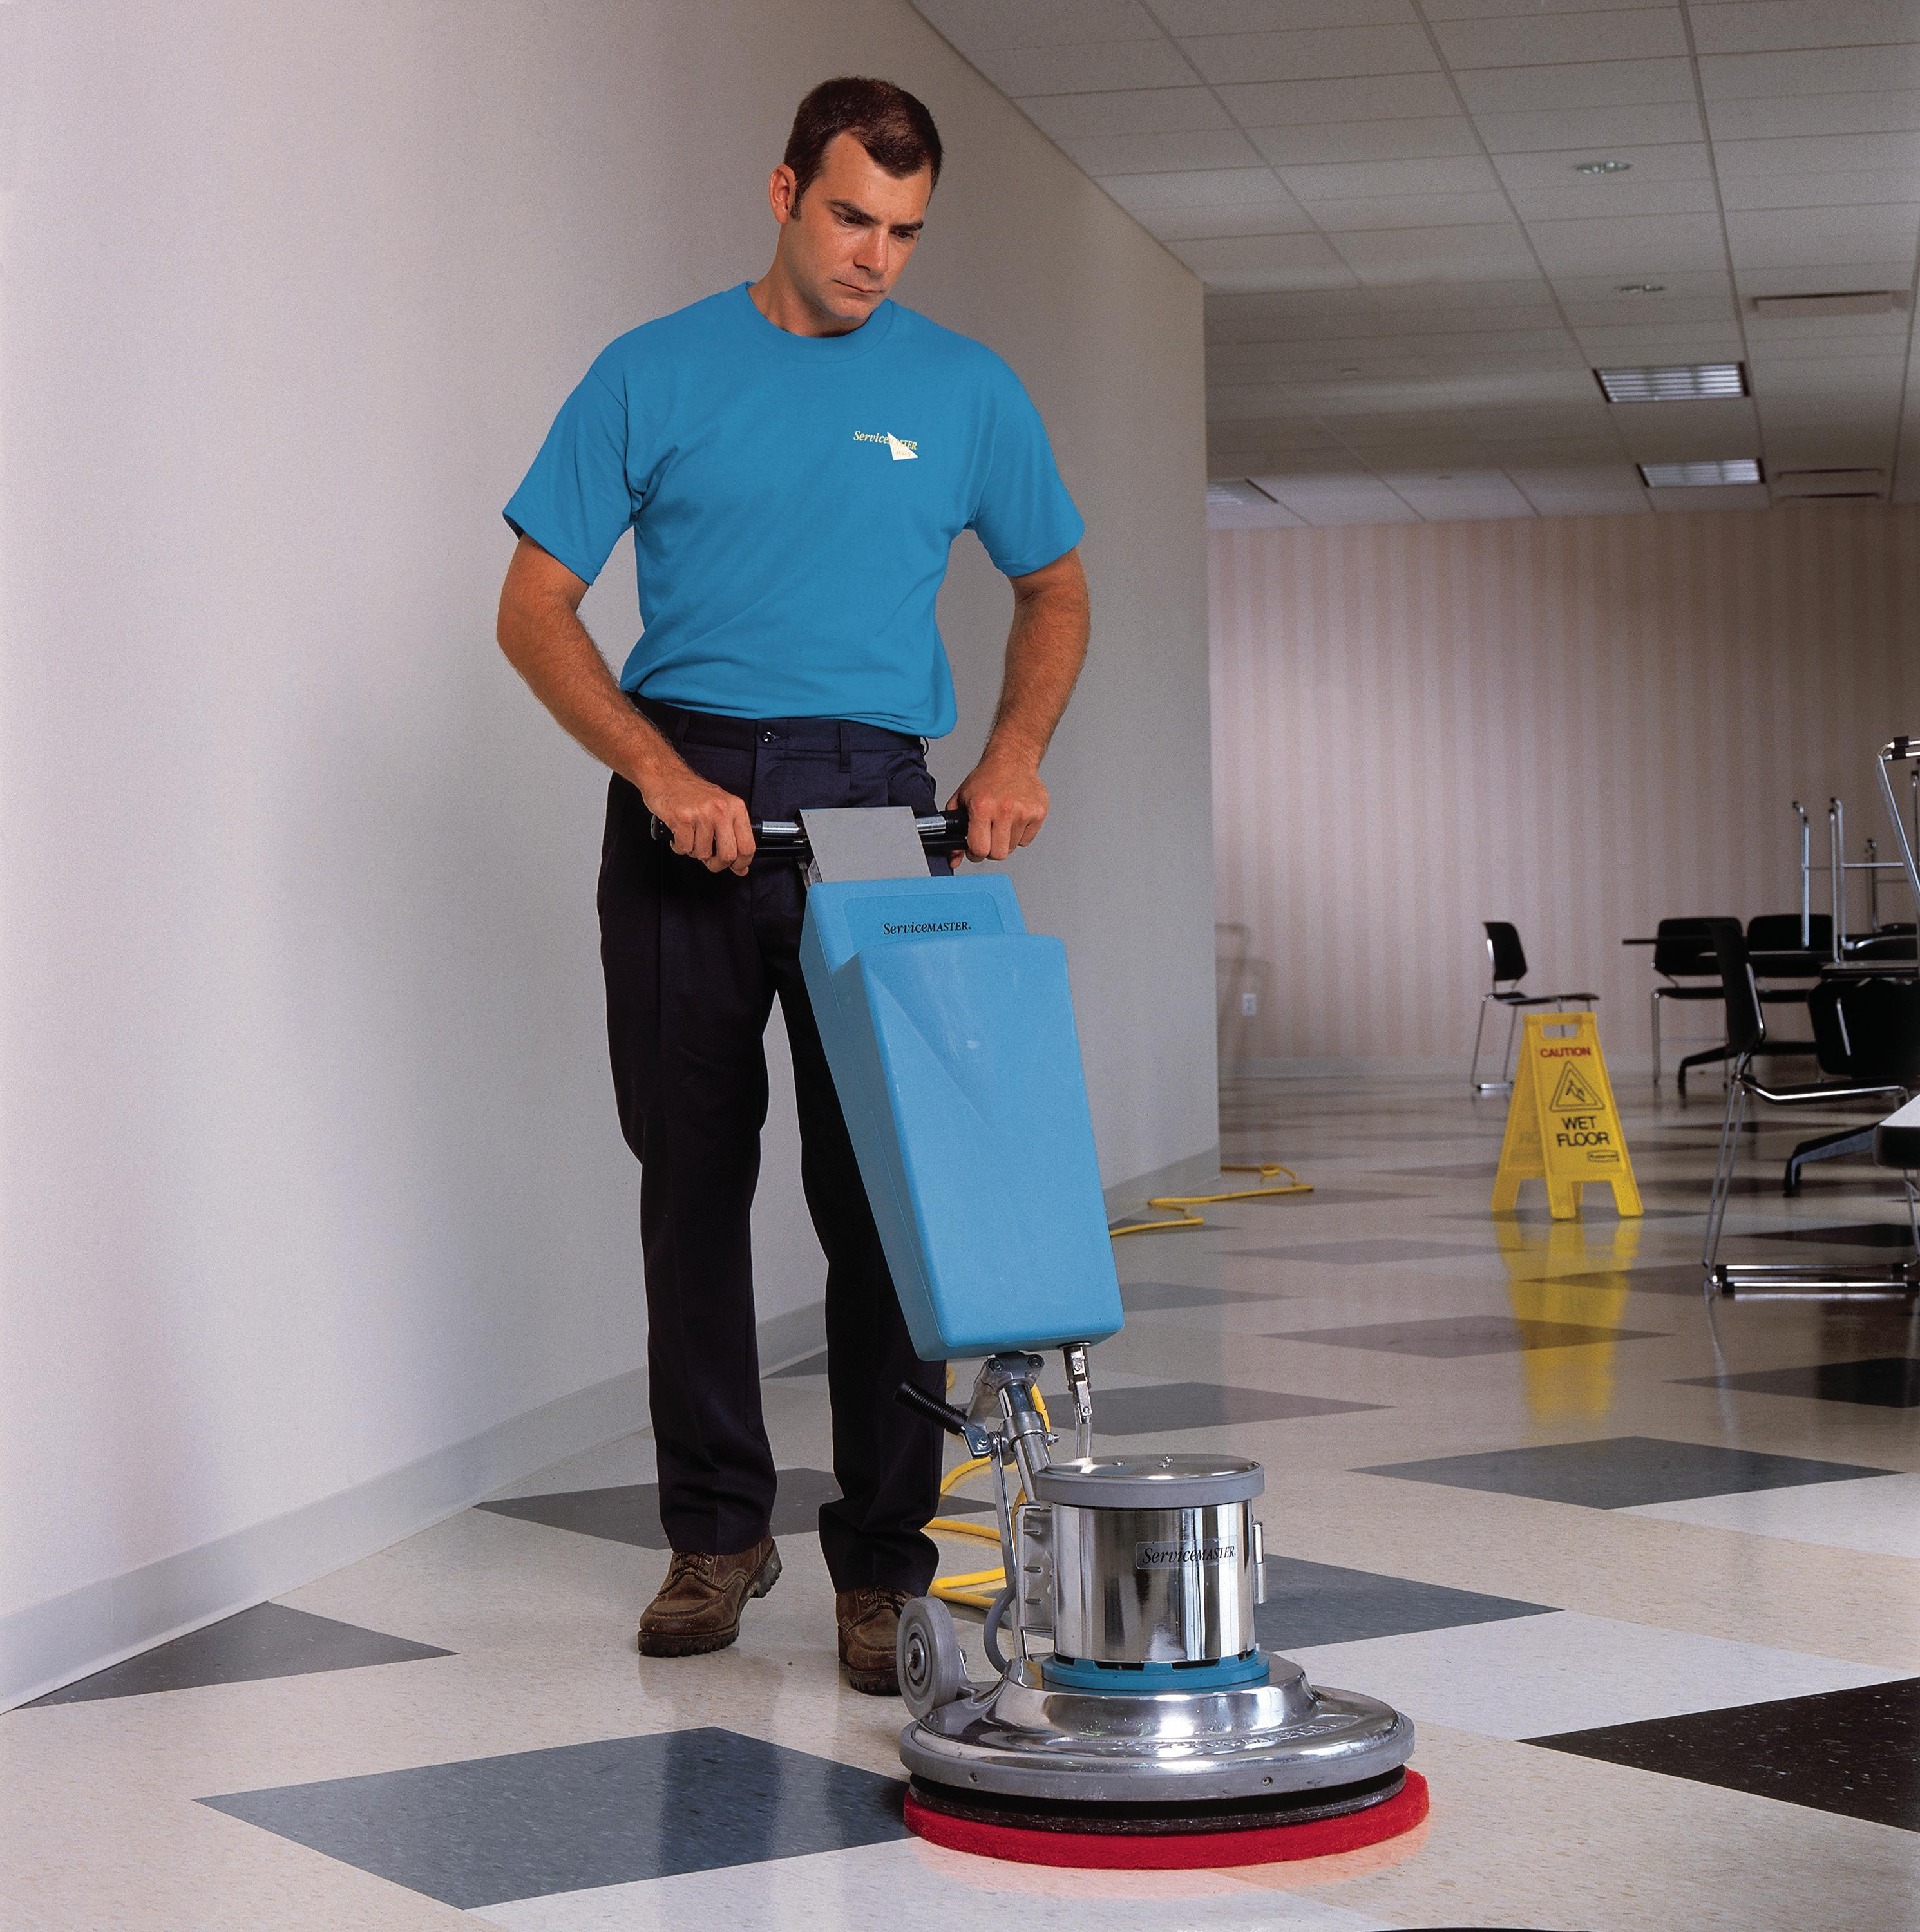 ServiceMaster Commercial Cleaning image 1